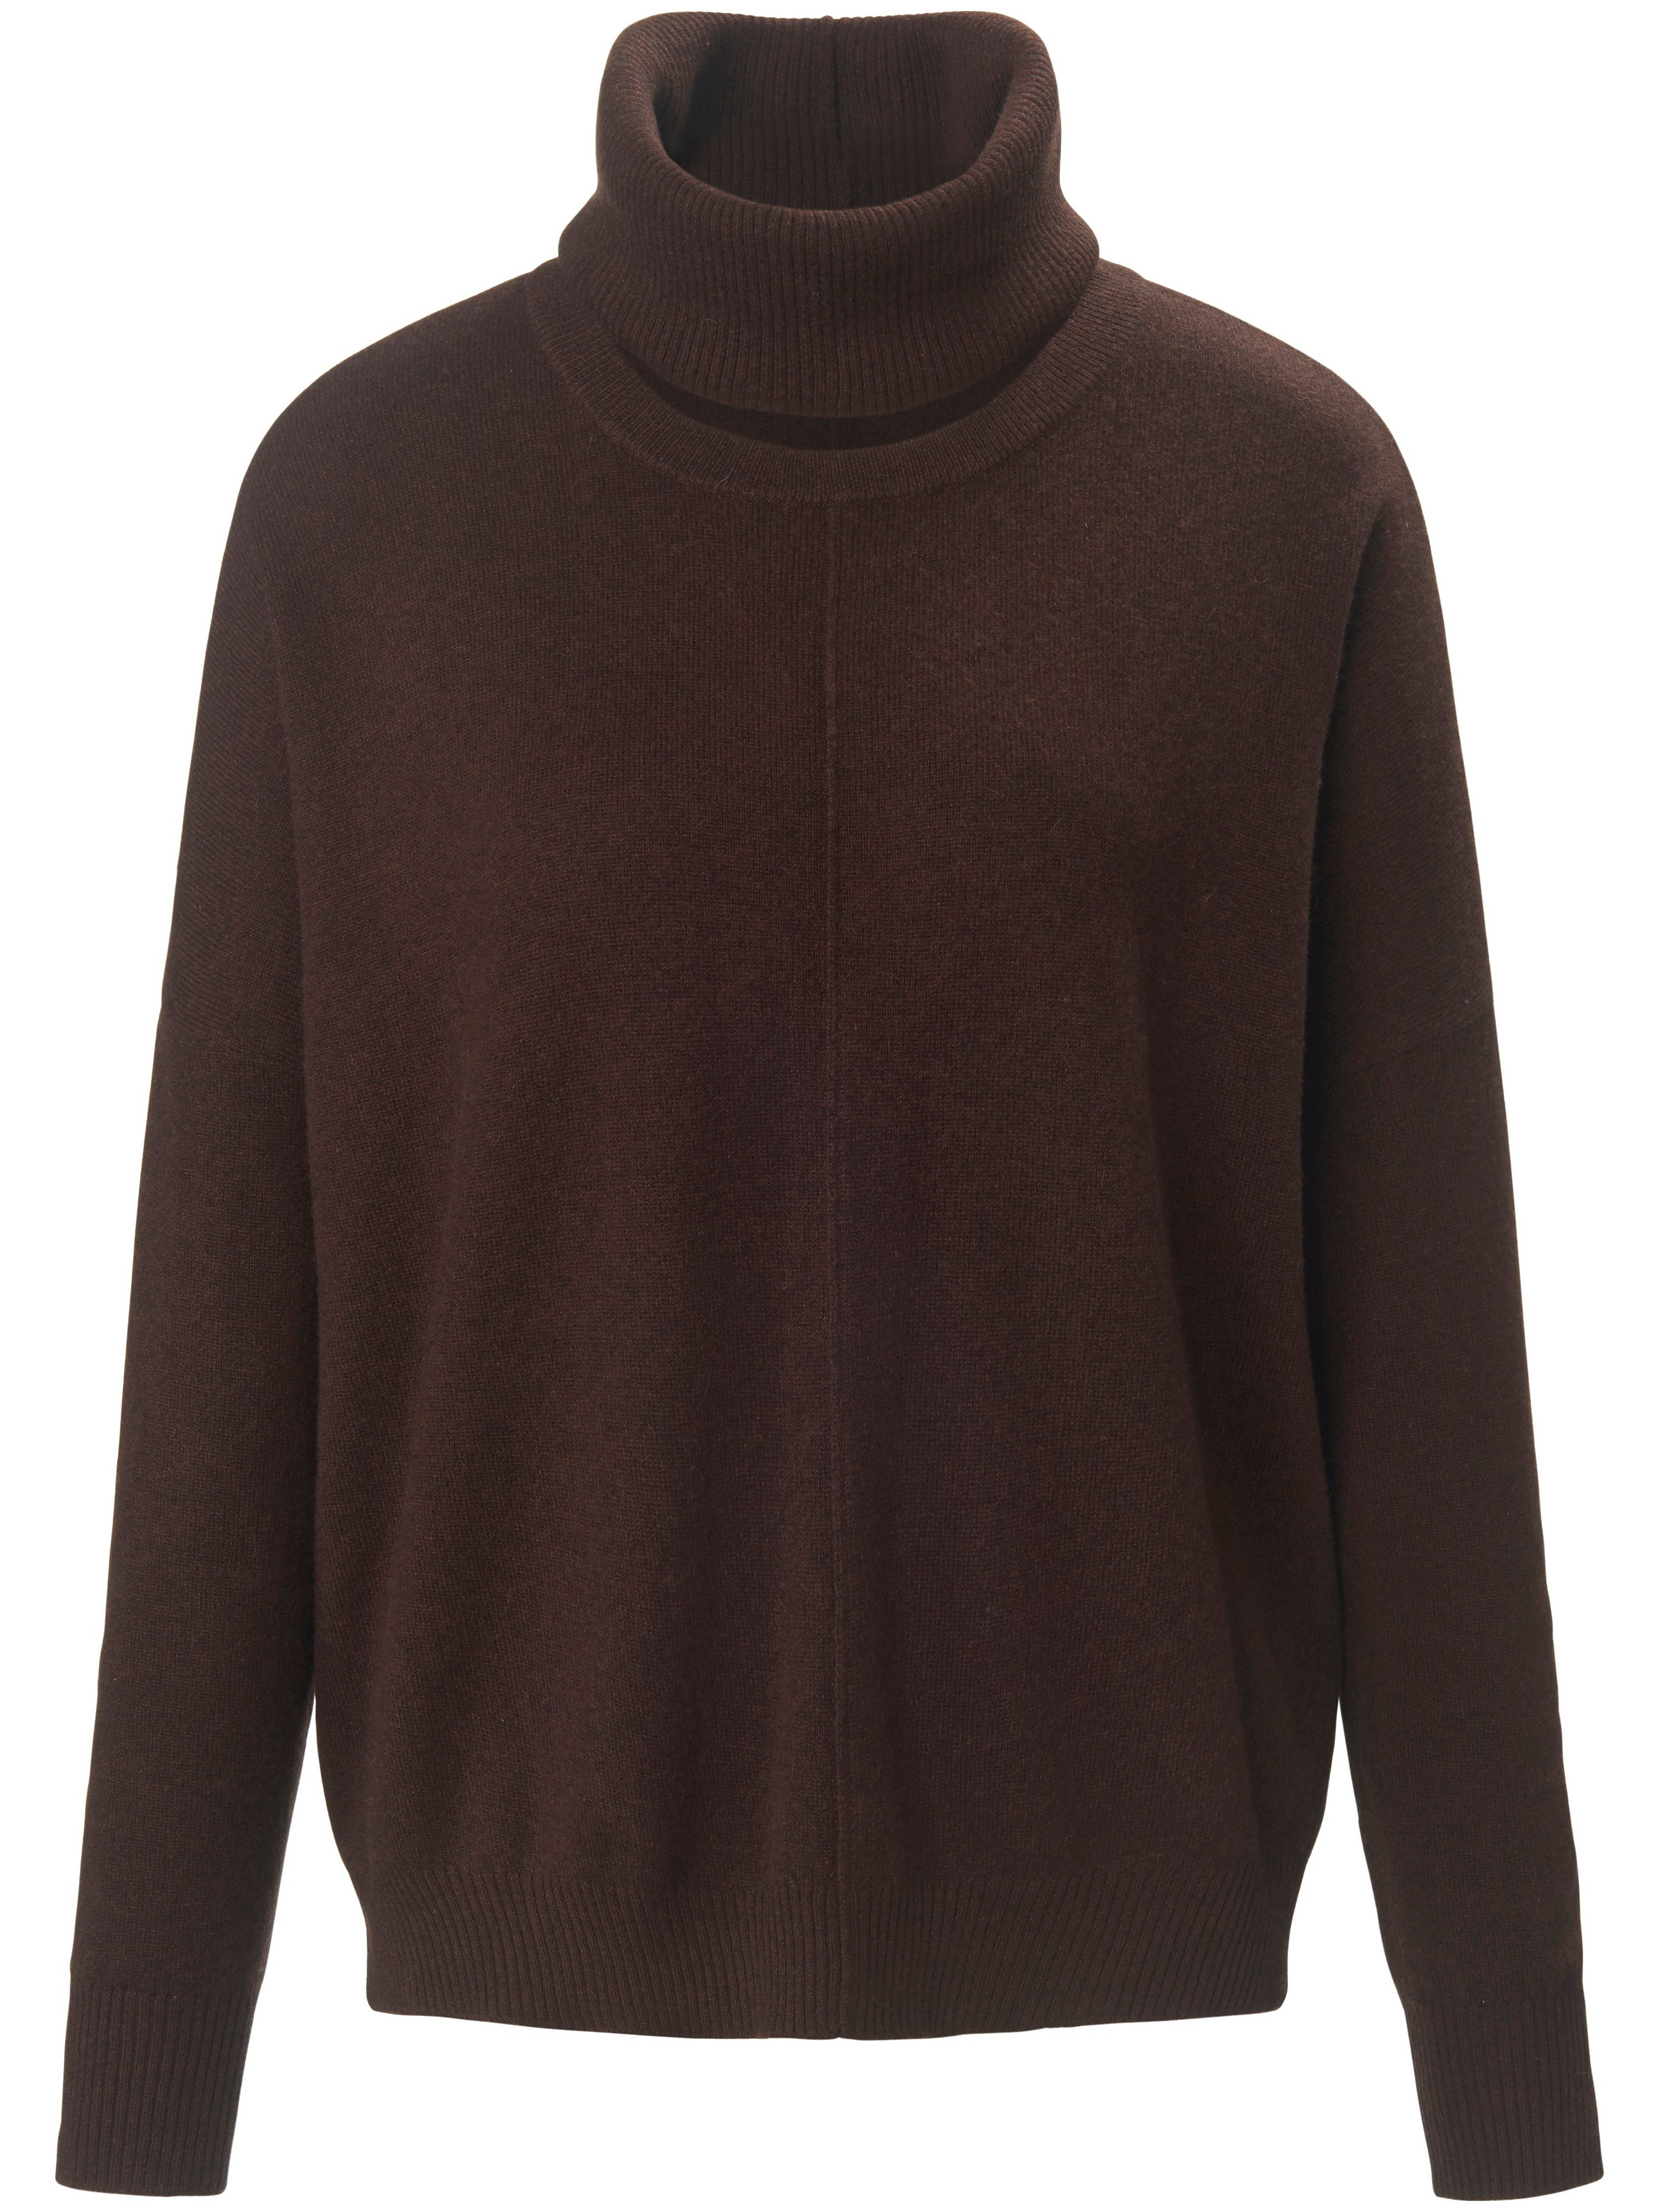 Le pull 100% cachemire  include marron taille 42